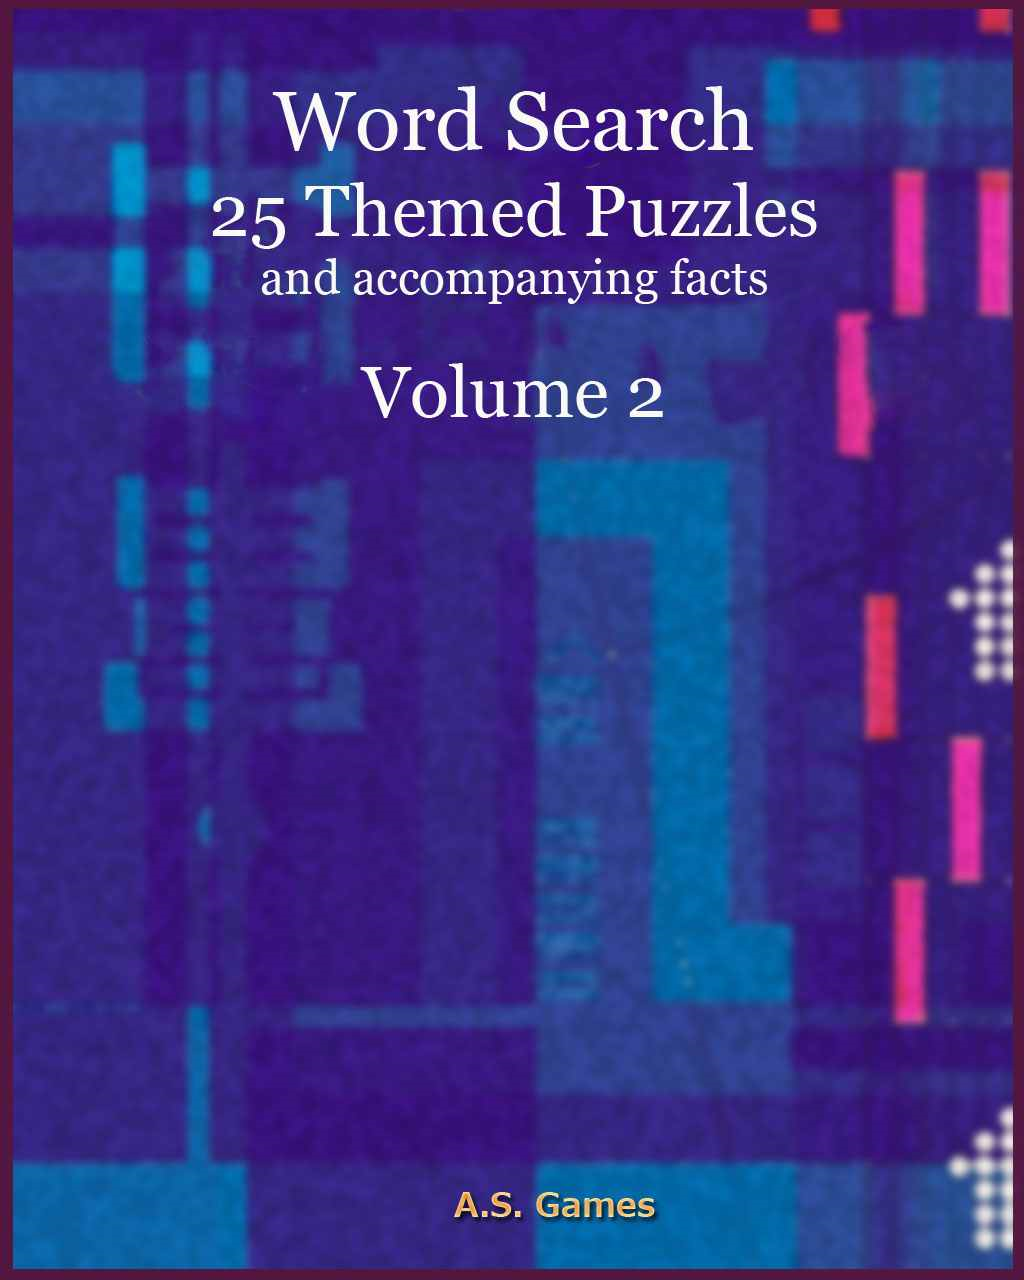 Word Search: 25 Themed Puzzles (and accompanying facts) Volume 2